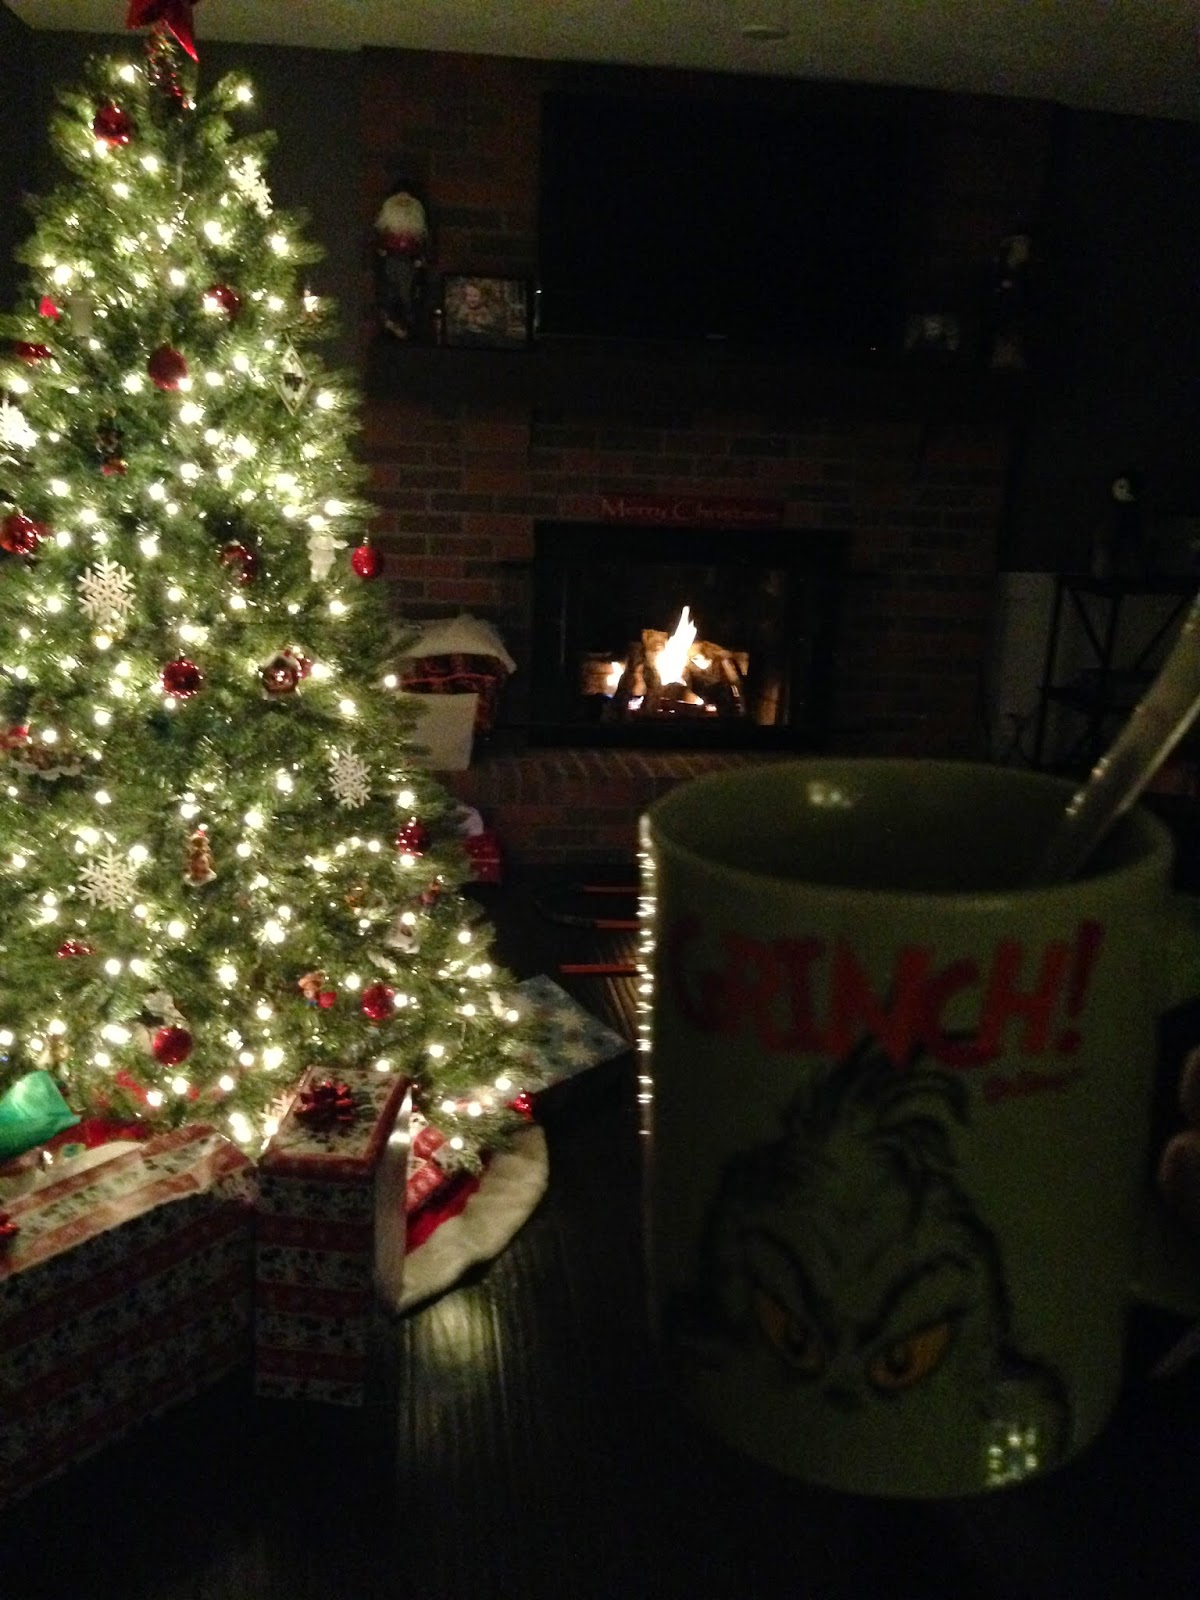 the grinch, coffee, quiet, fire